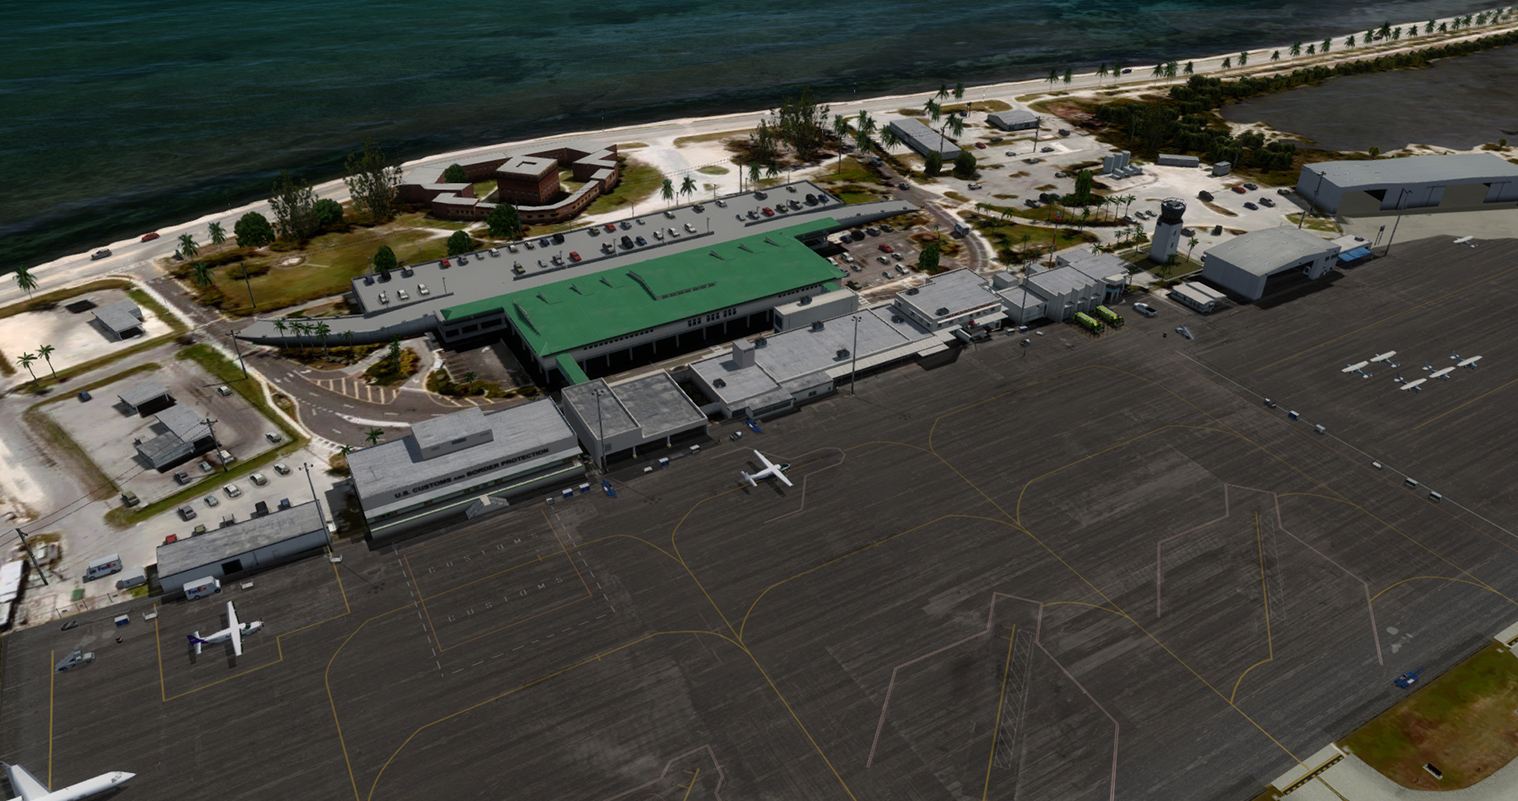 LATINVFR - KEY WEST KEYW V2 FSX P3D